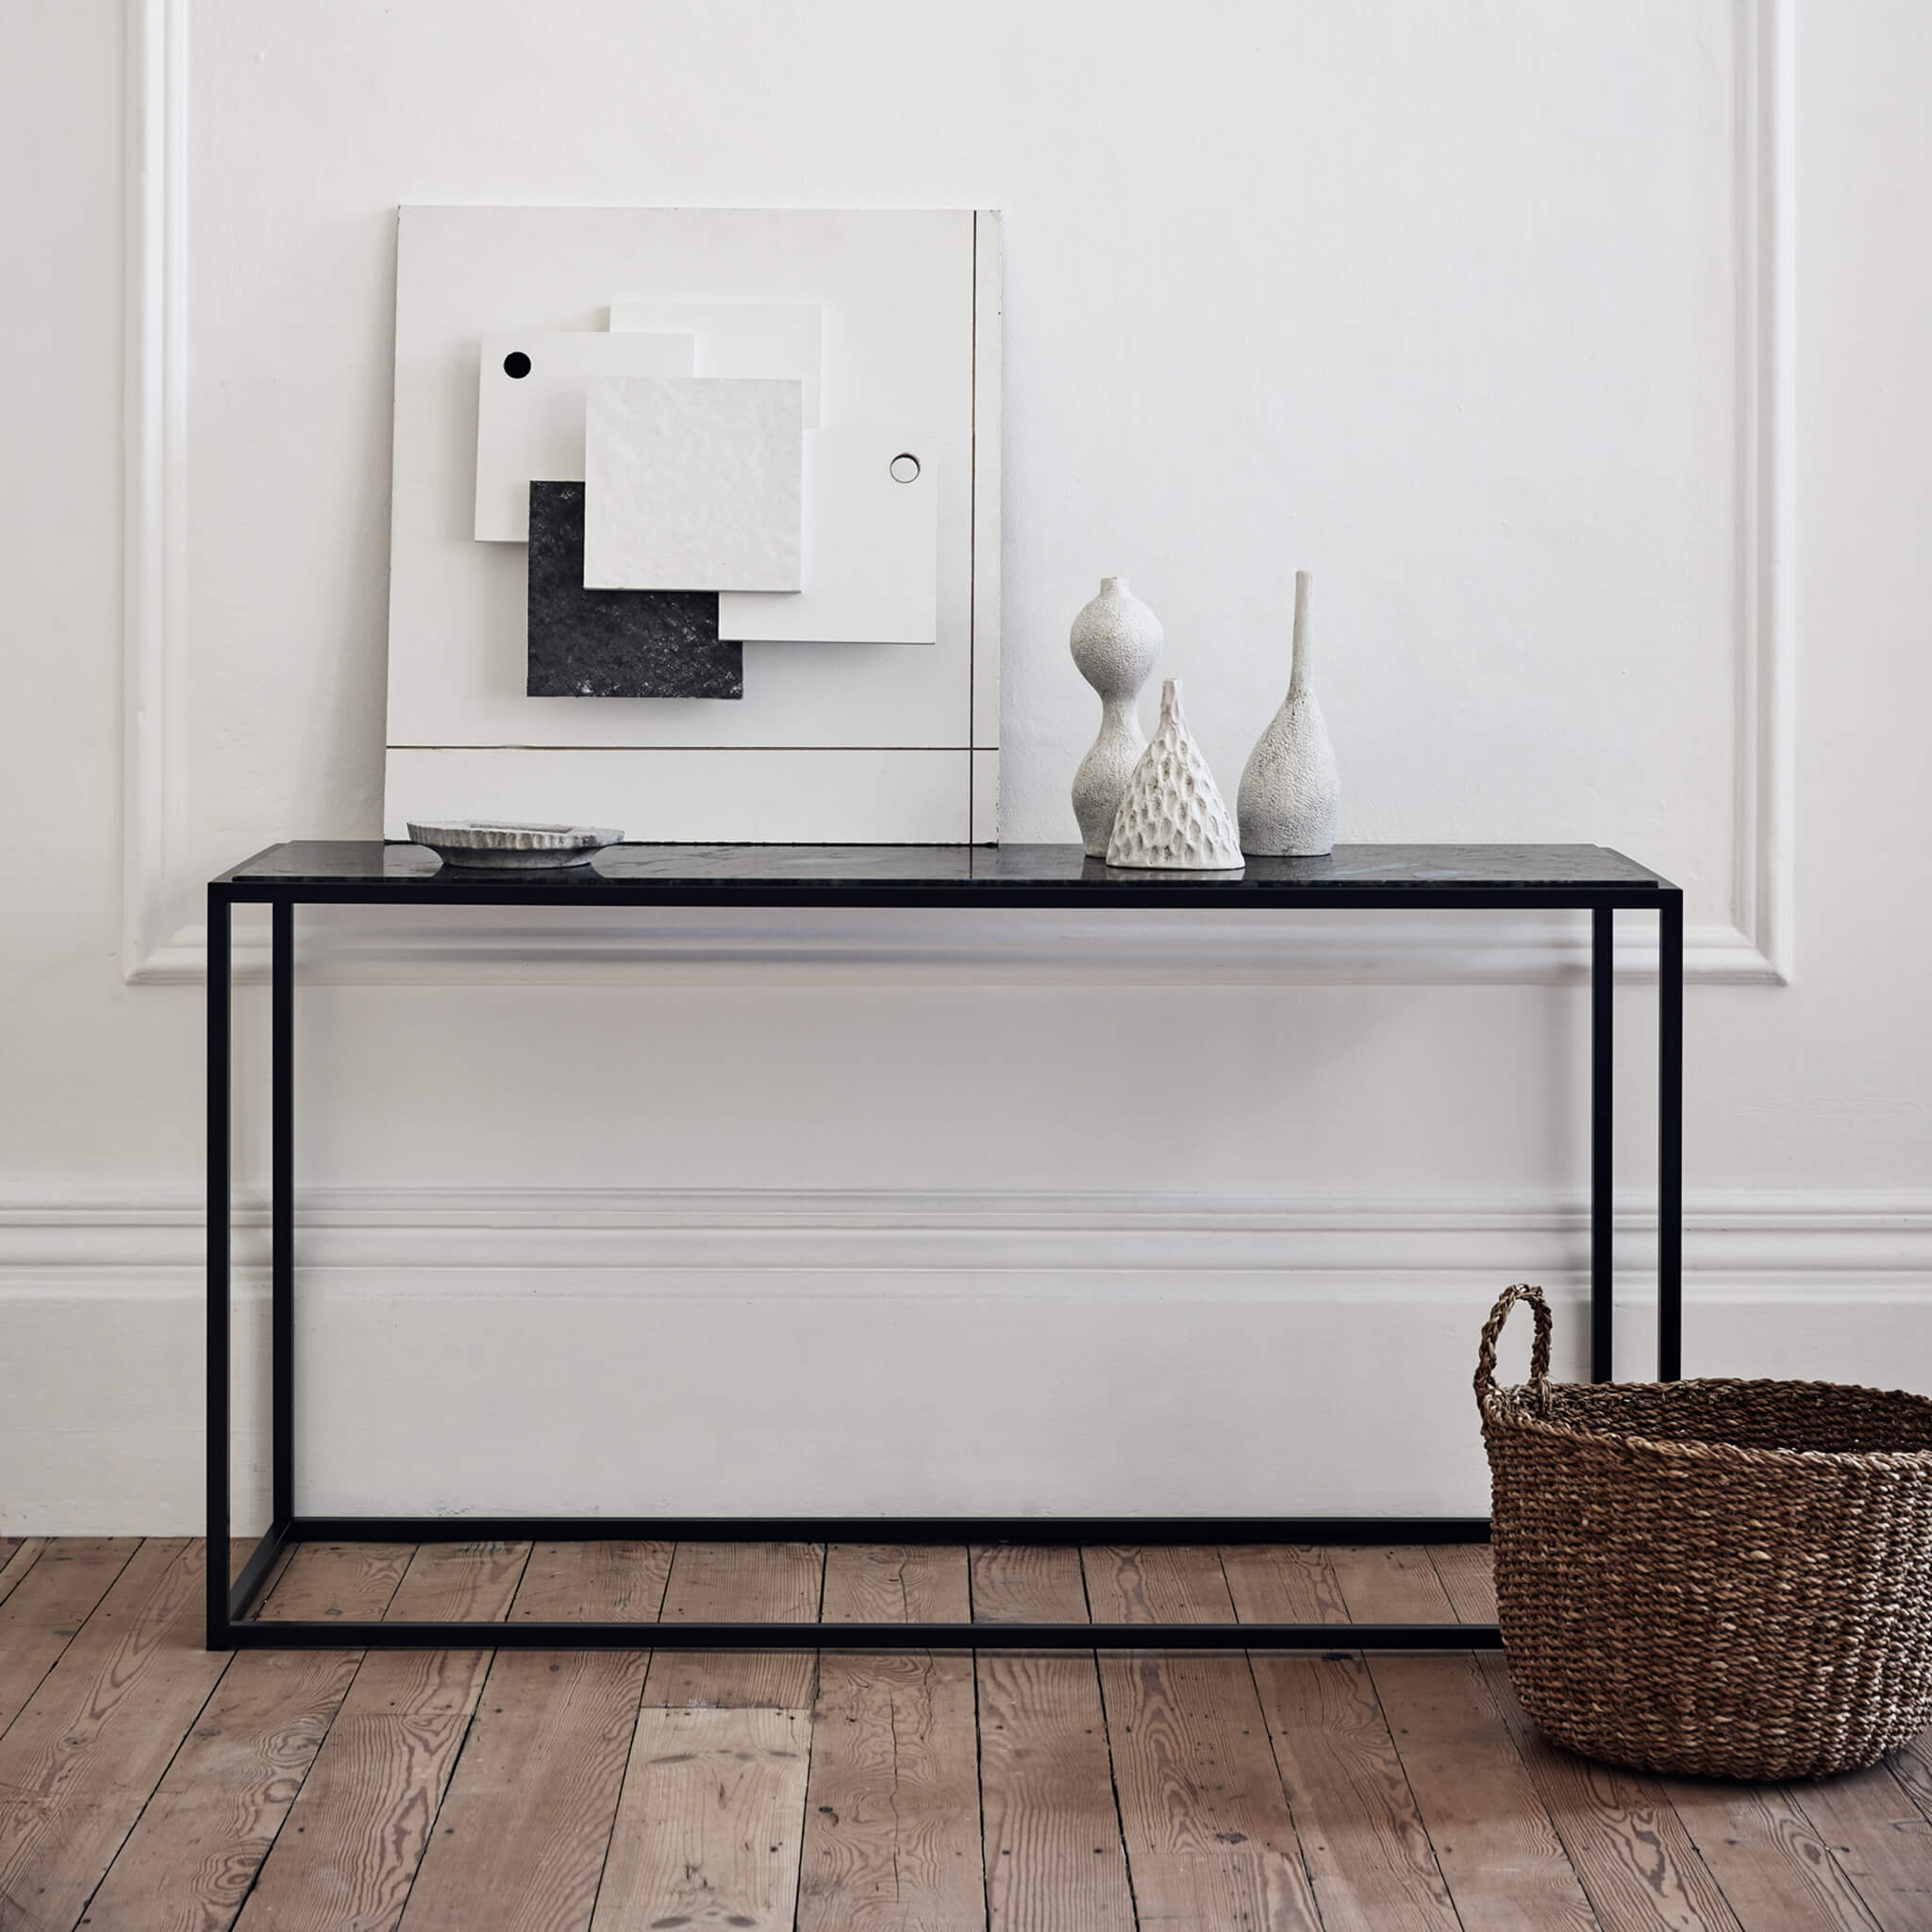 Siena Console Table | modern furniture by Tom Faulkner